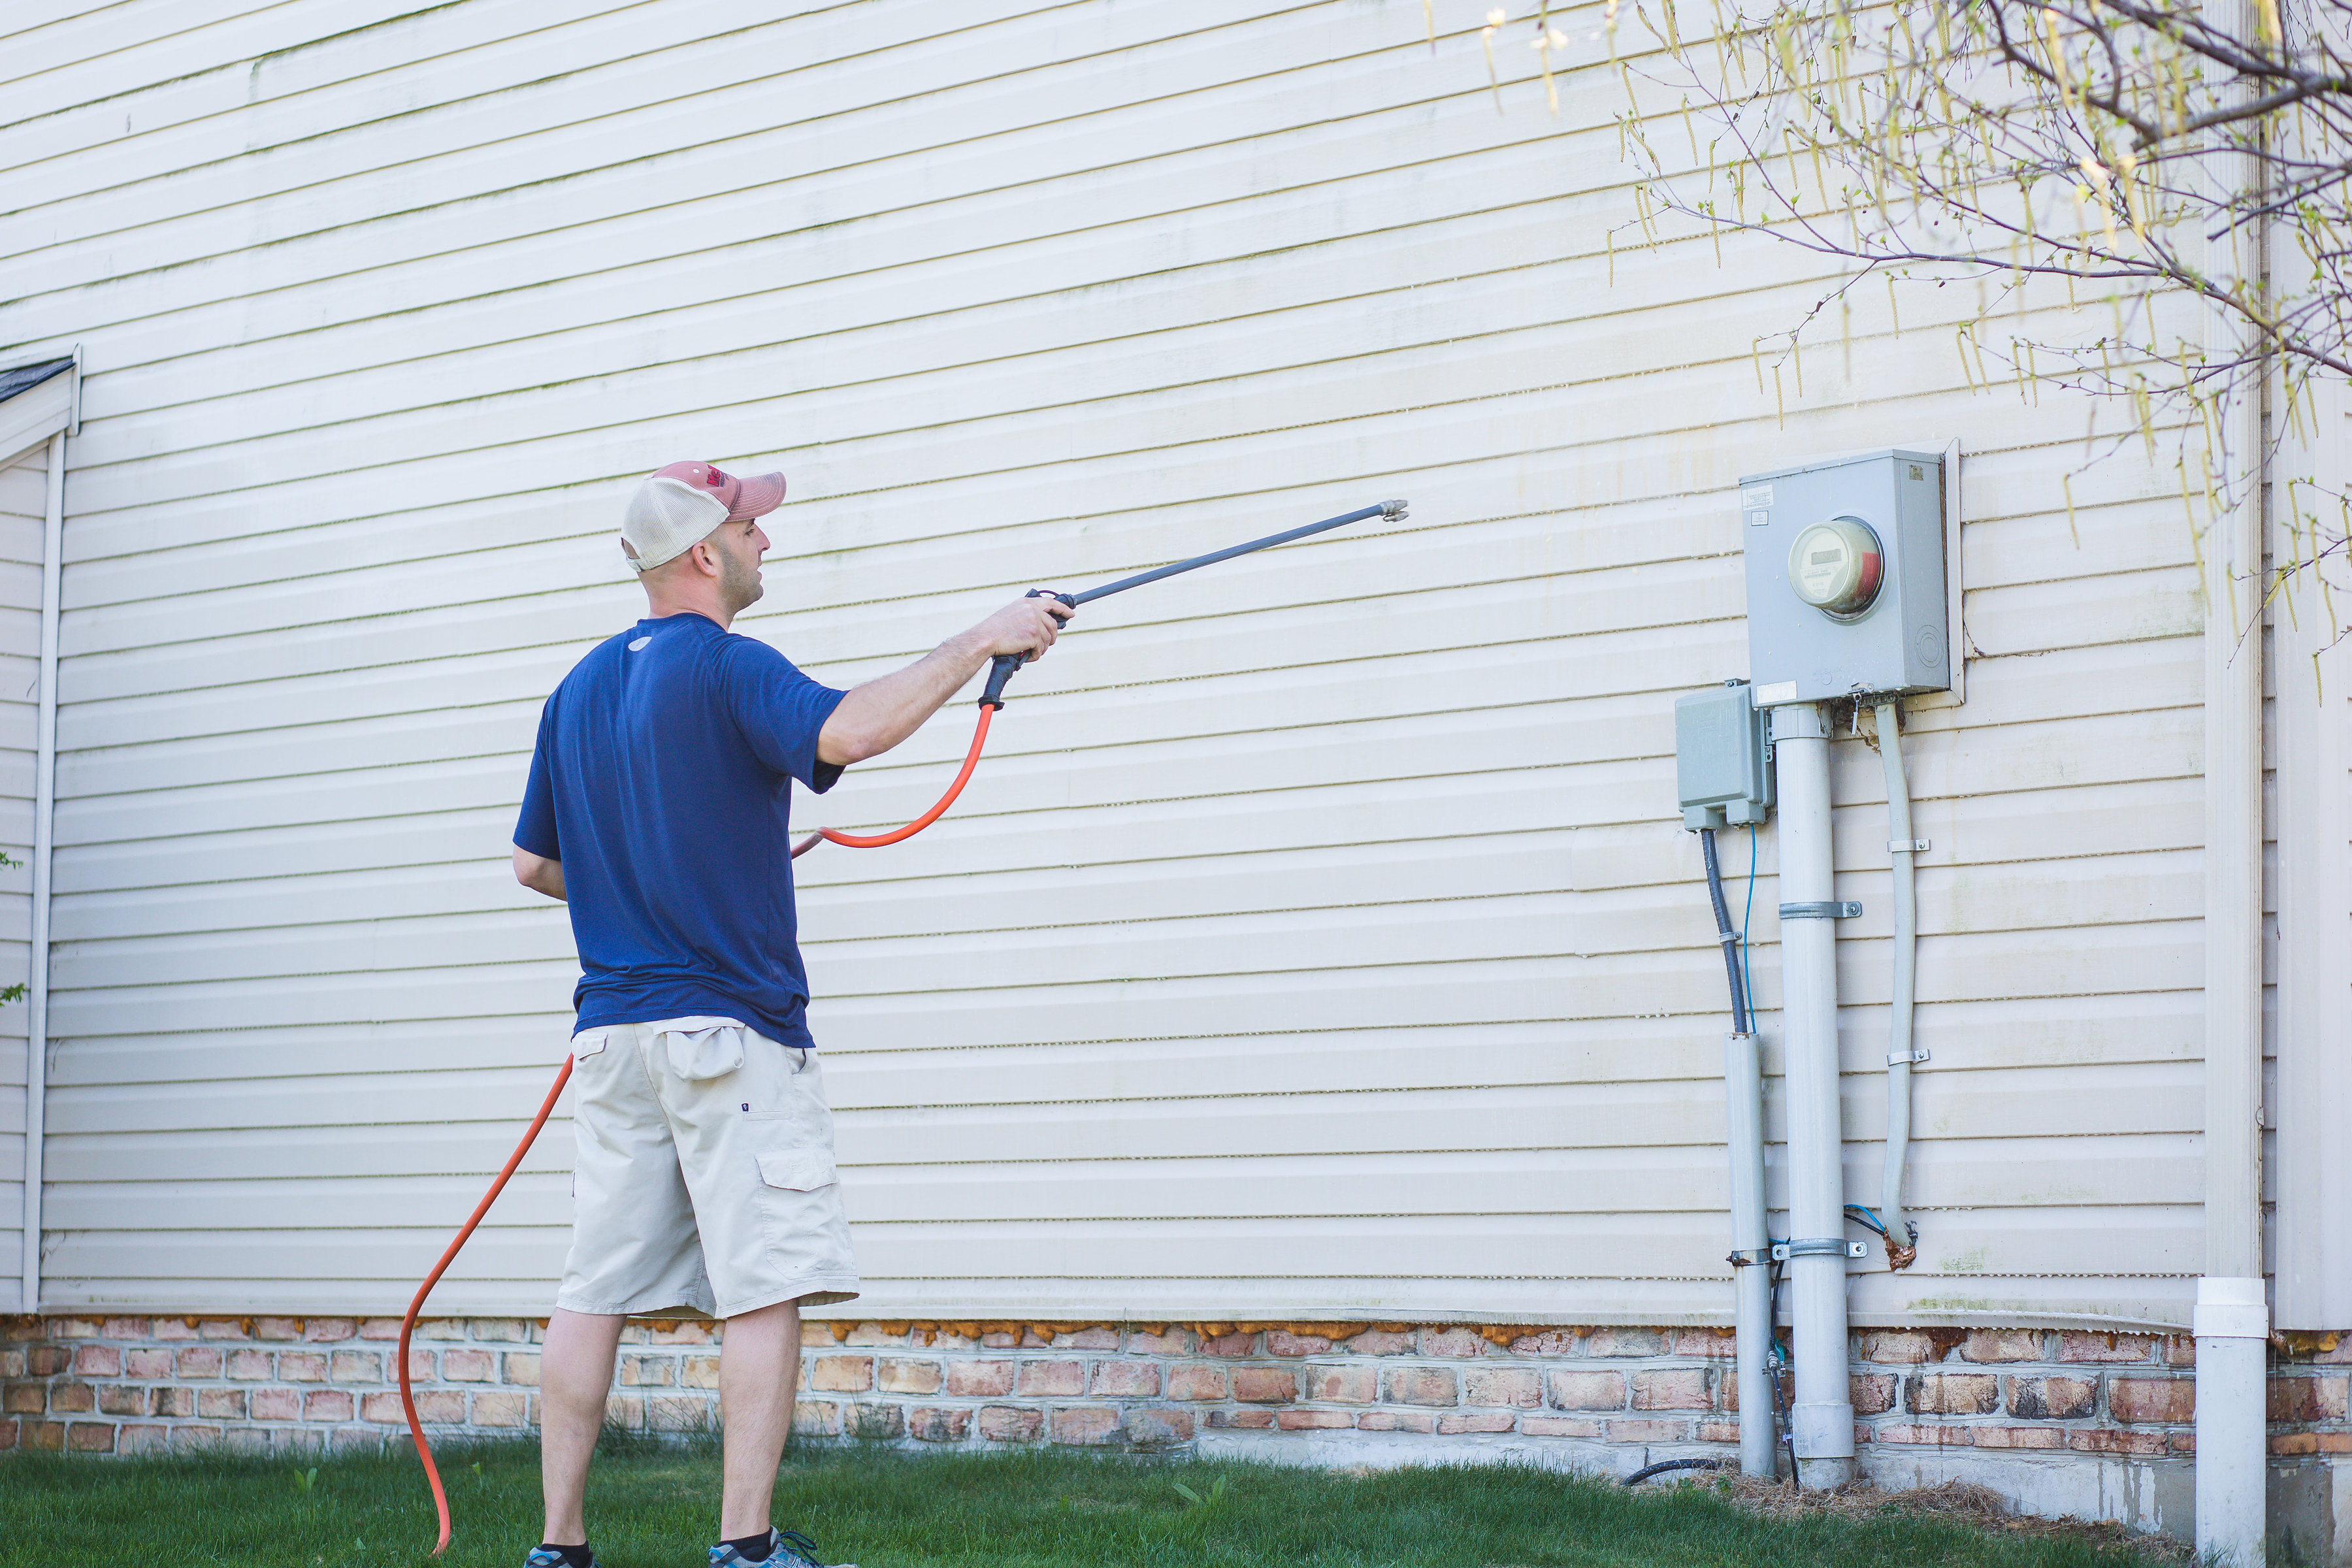 Pressure Washer | Sidewalk Cleaning Service in Greencastle PA